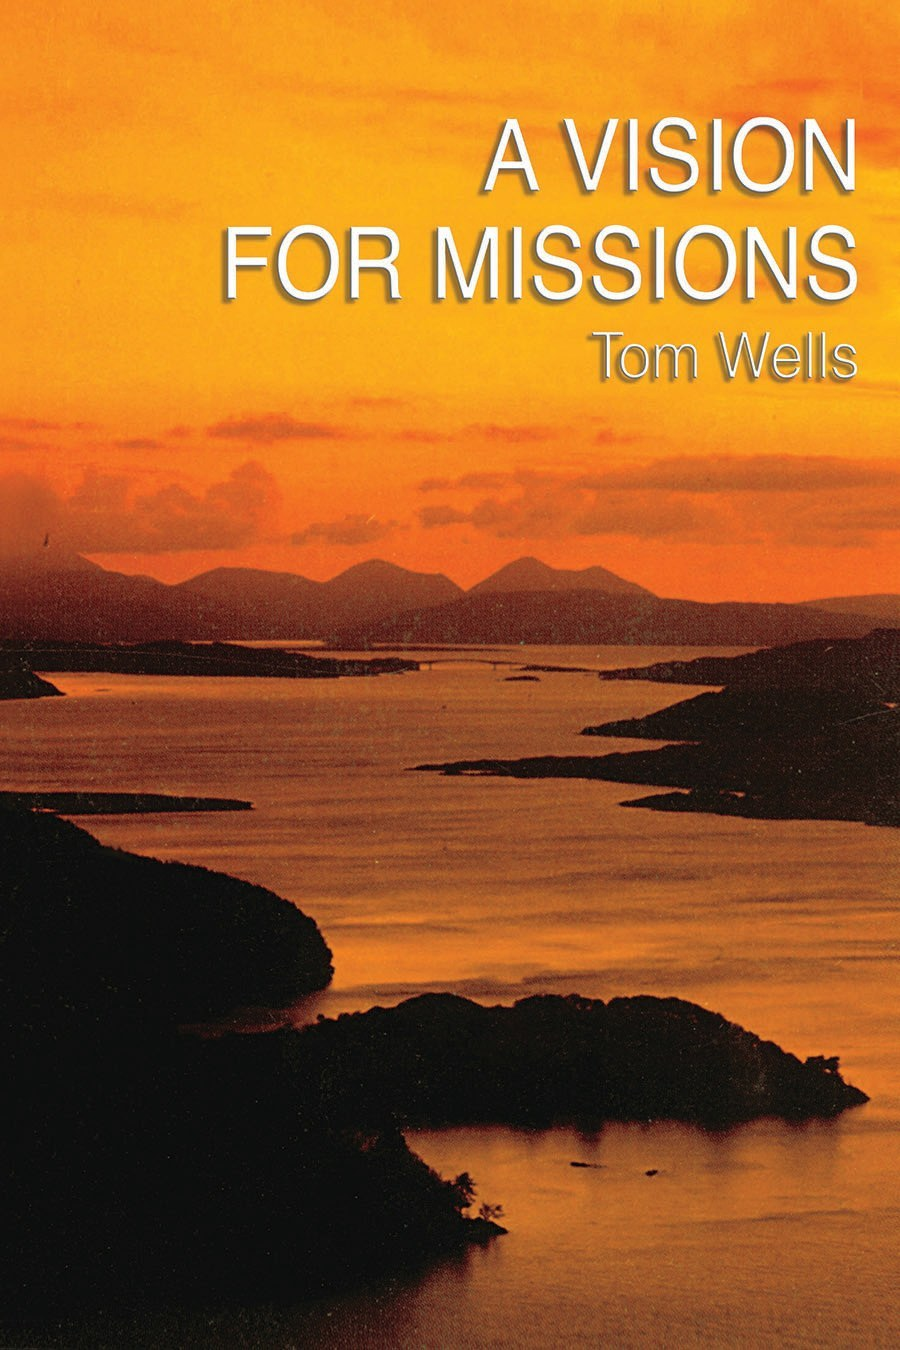 Book Cover for 'A Vision For Missions'